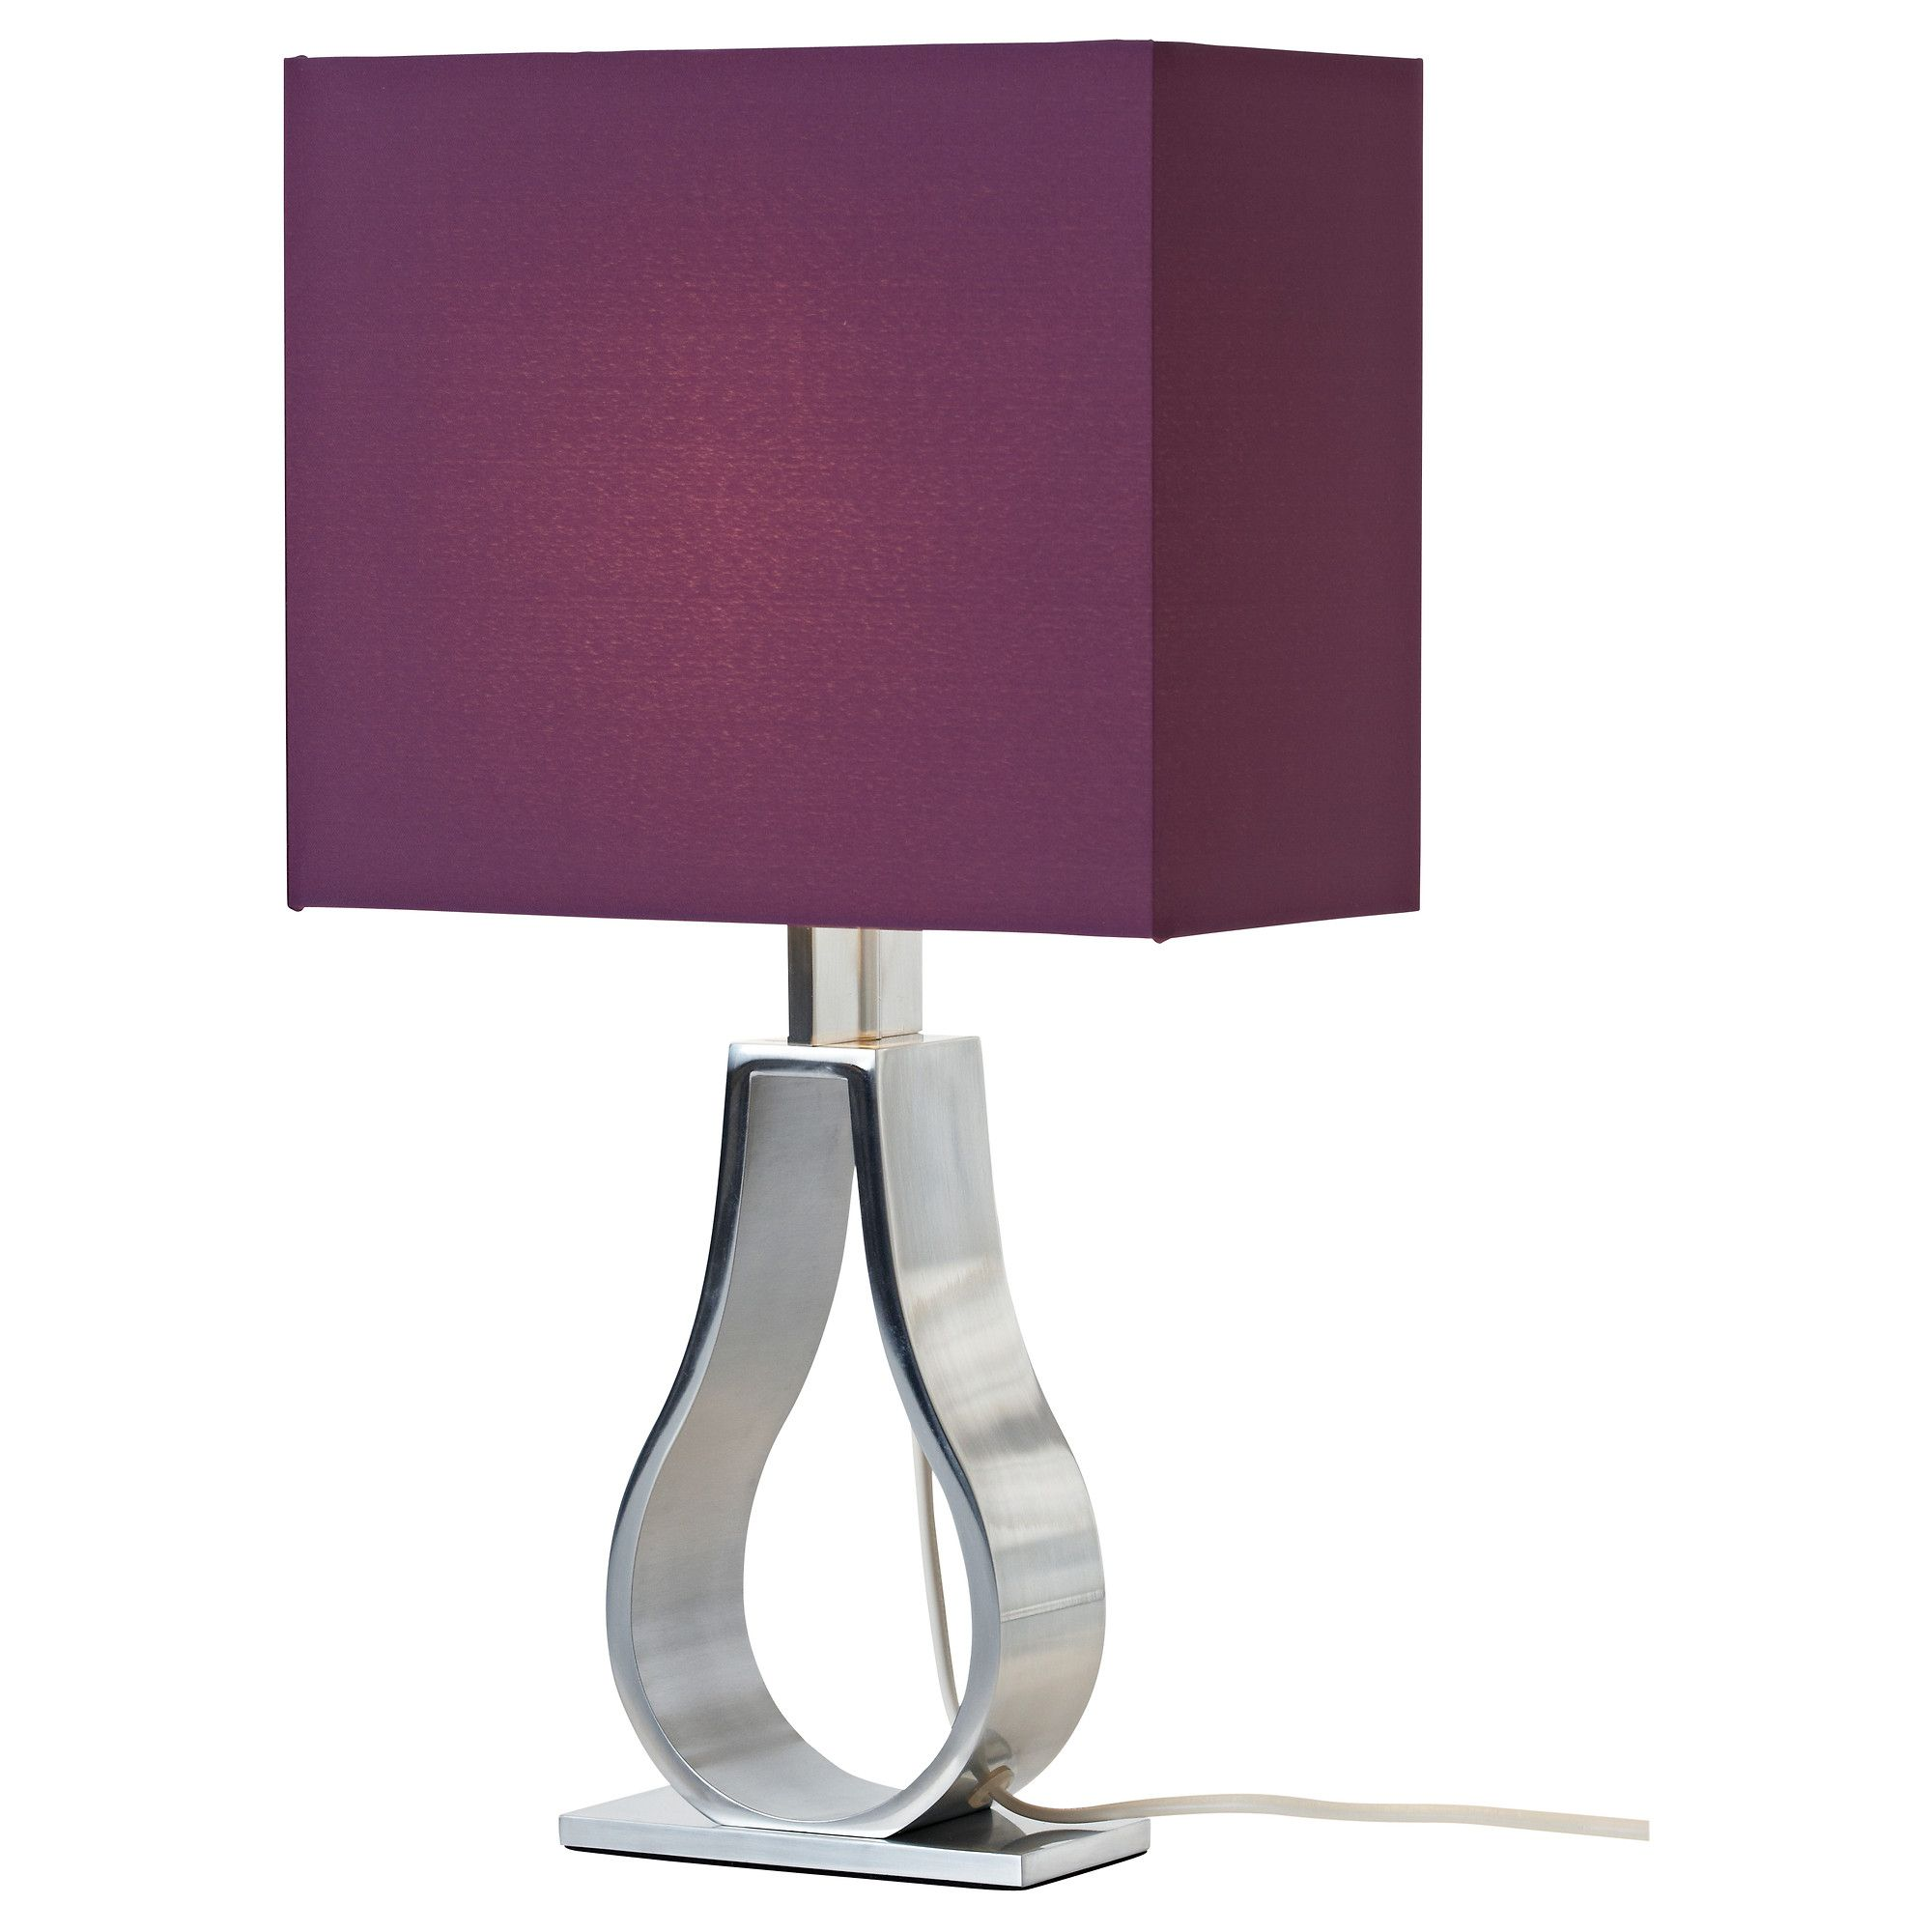 Us Furniture And Home Furnishings Table Lamp Purple